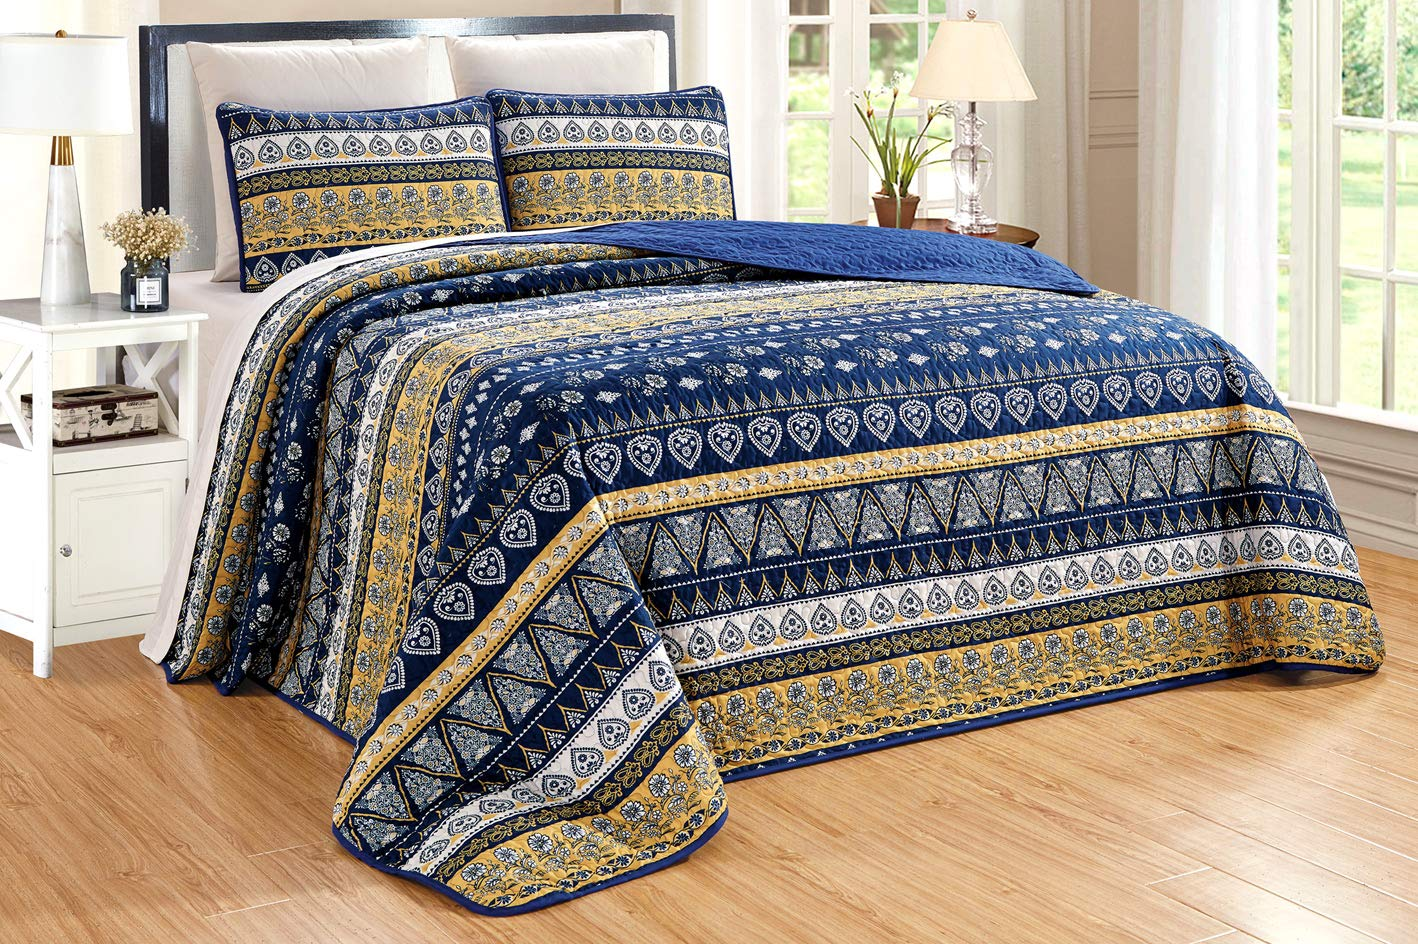 "GrandLinen 3-Piece Fine Printed Oversize (100"" X 95"") Quilt Set Reversible Bedspread Coverlet Queen Size Bed Cover (Navy Blue, Gold, Yellow Stripe)"